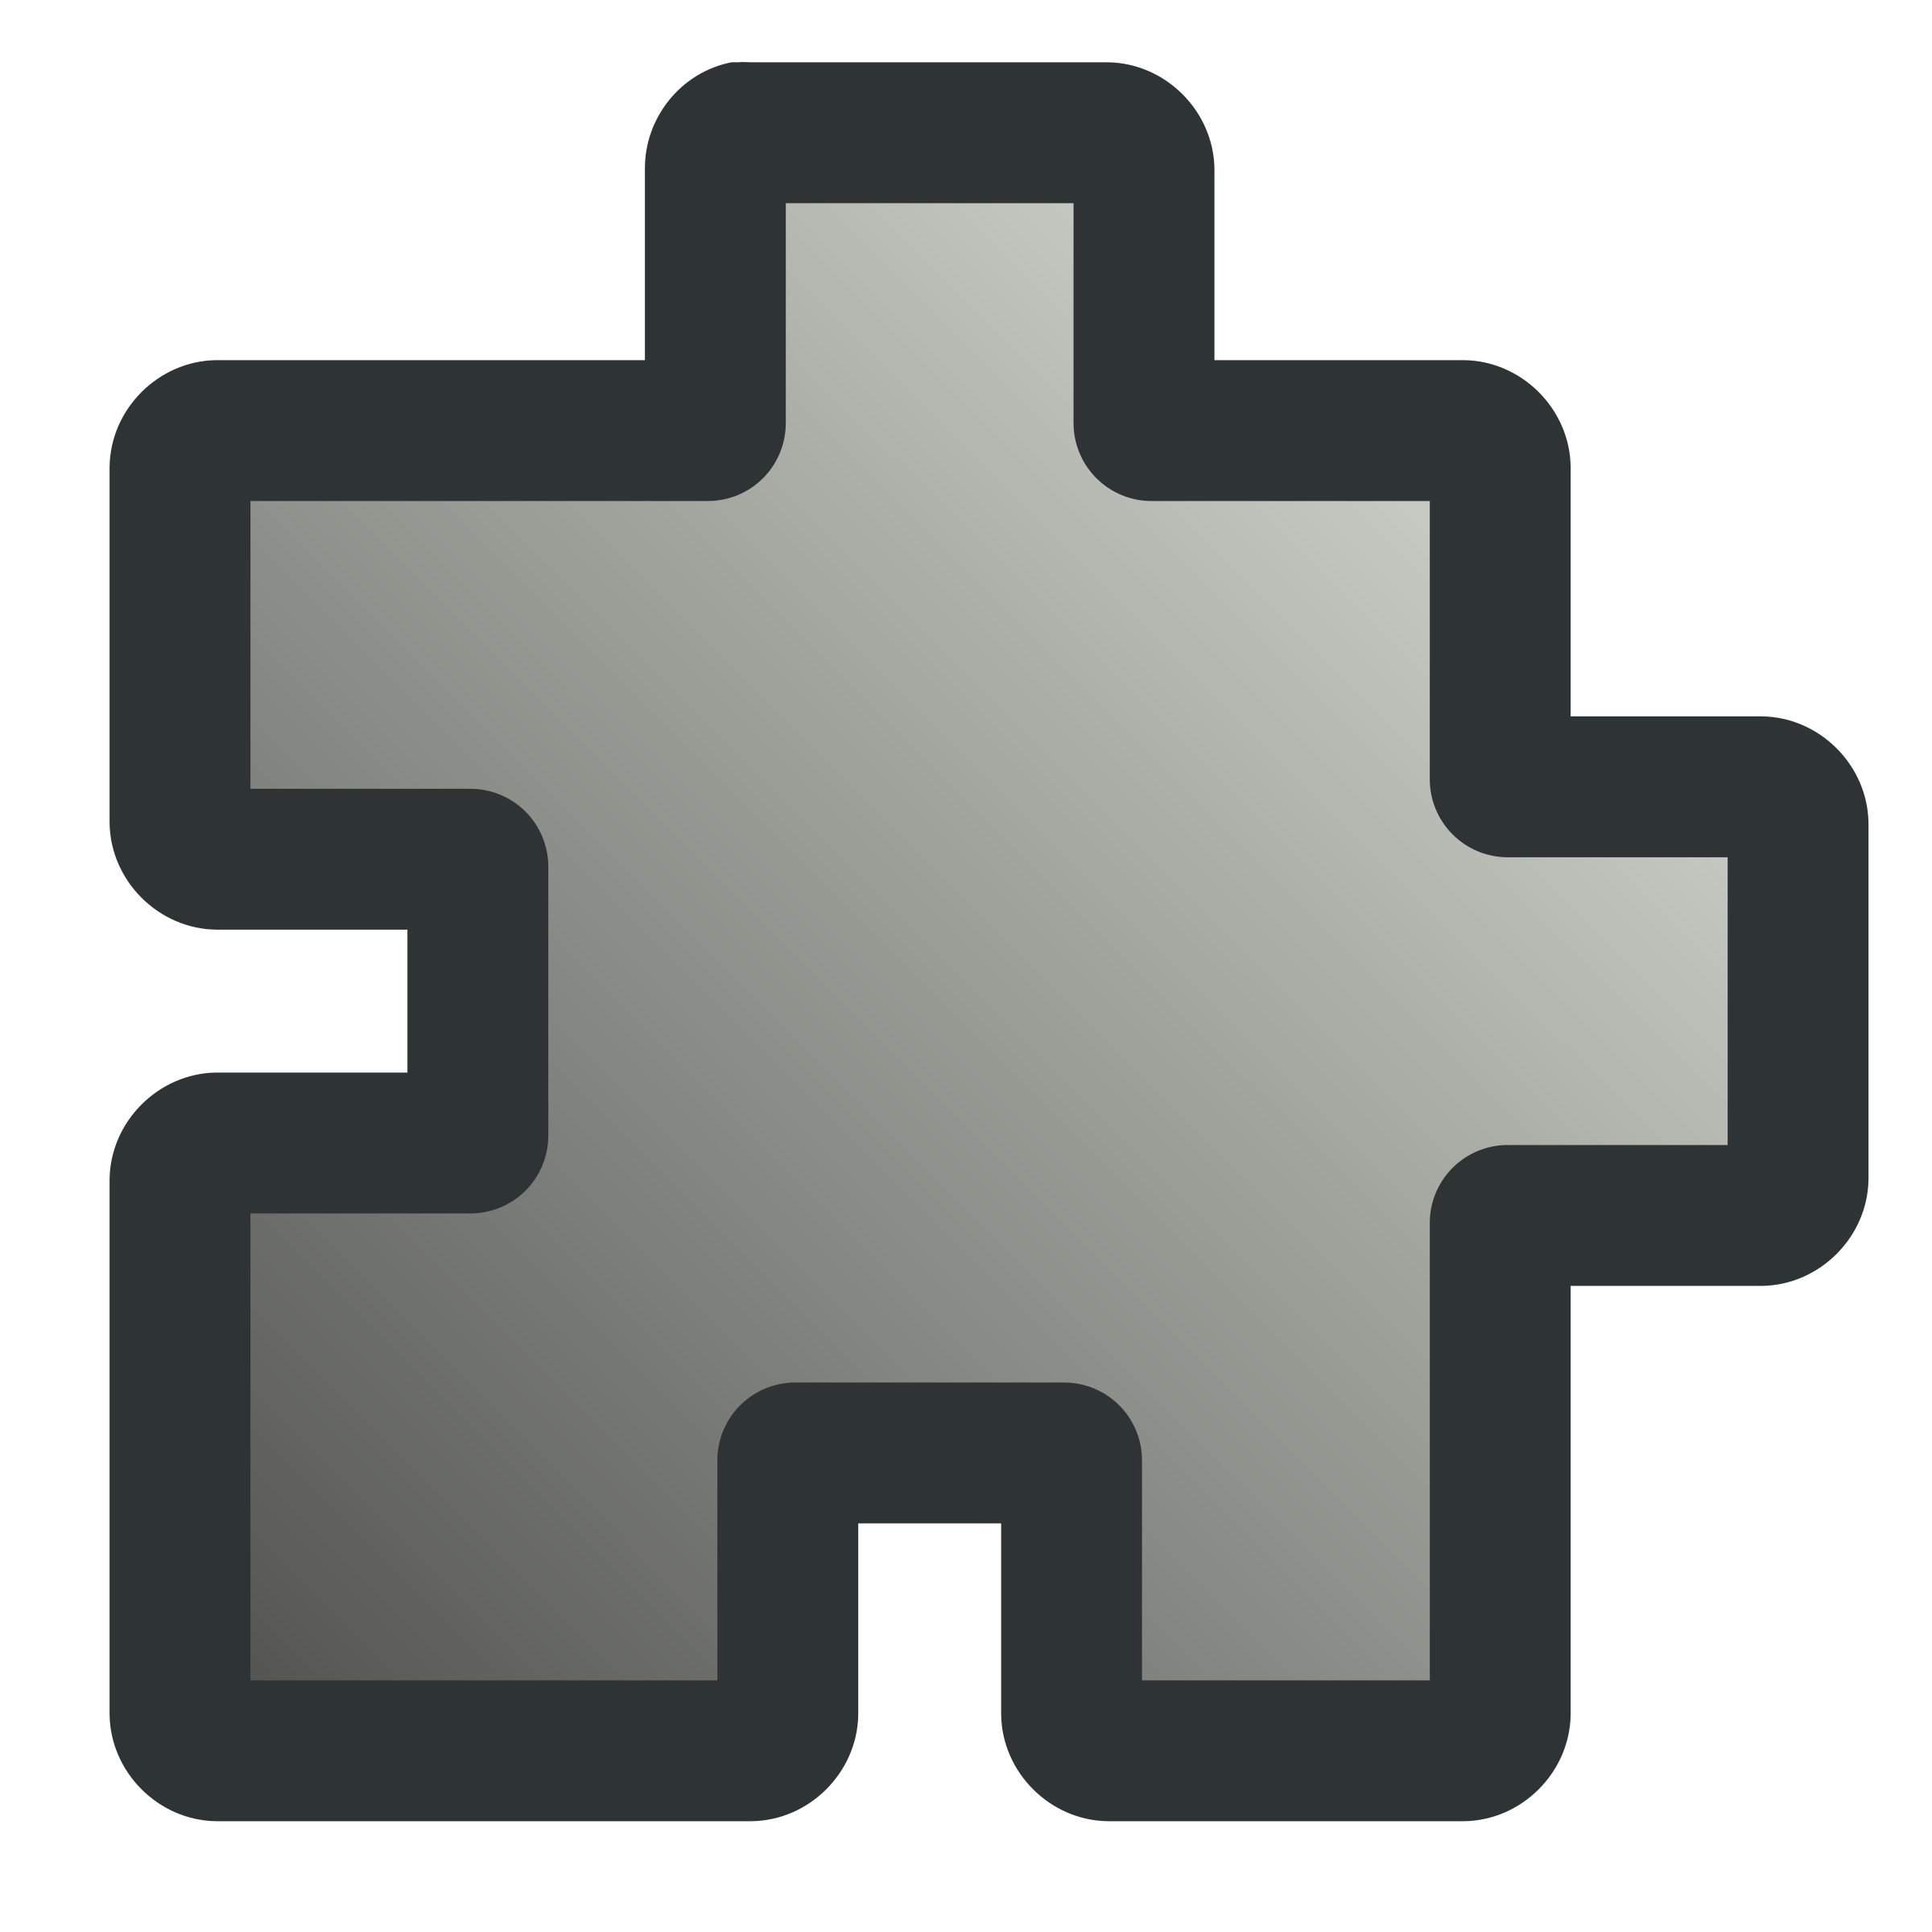 icon_puzzle_grey by jean_victor_balin